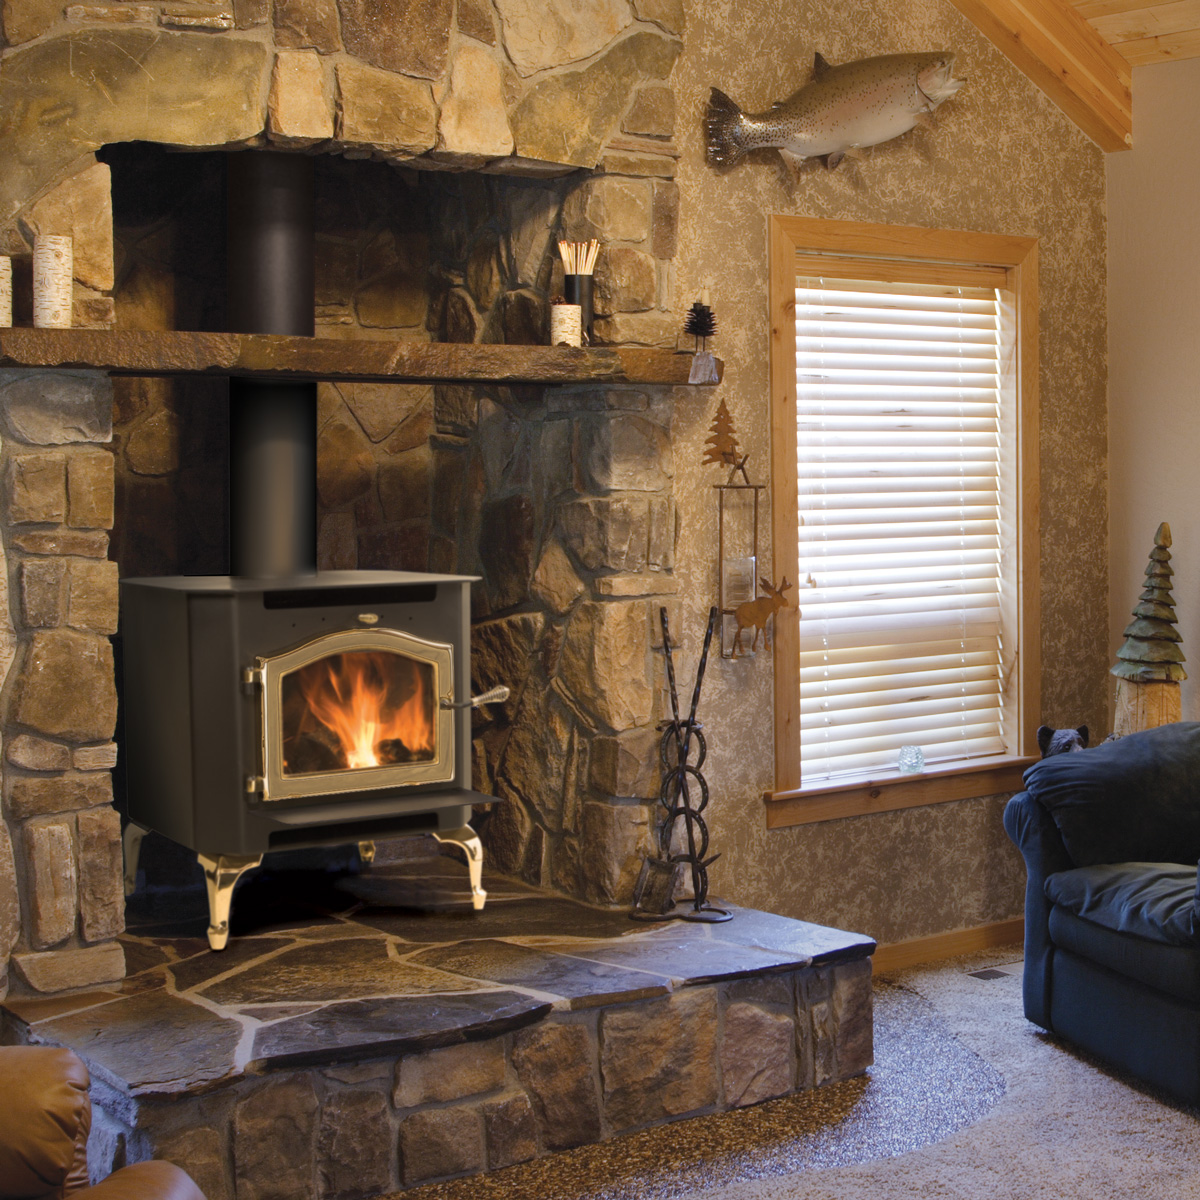 Sequoia wood stove and fireplace from kuma stoves for New construction wood burning fireplace